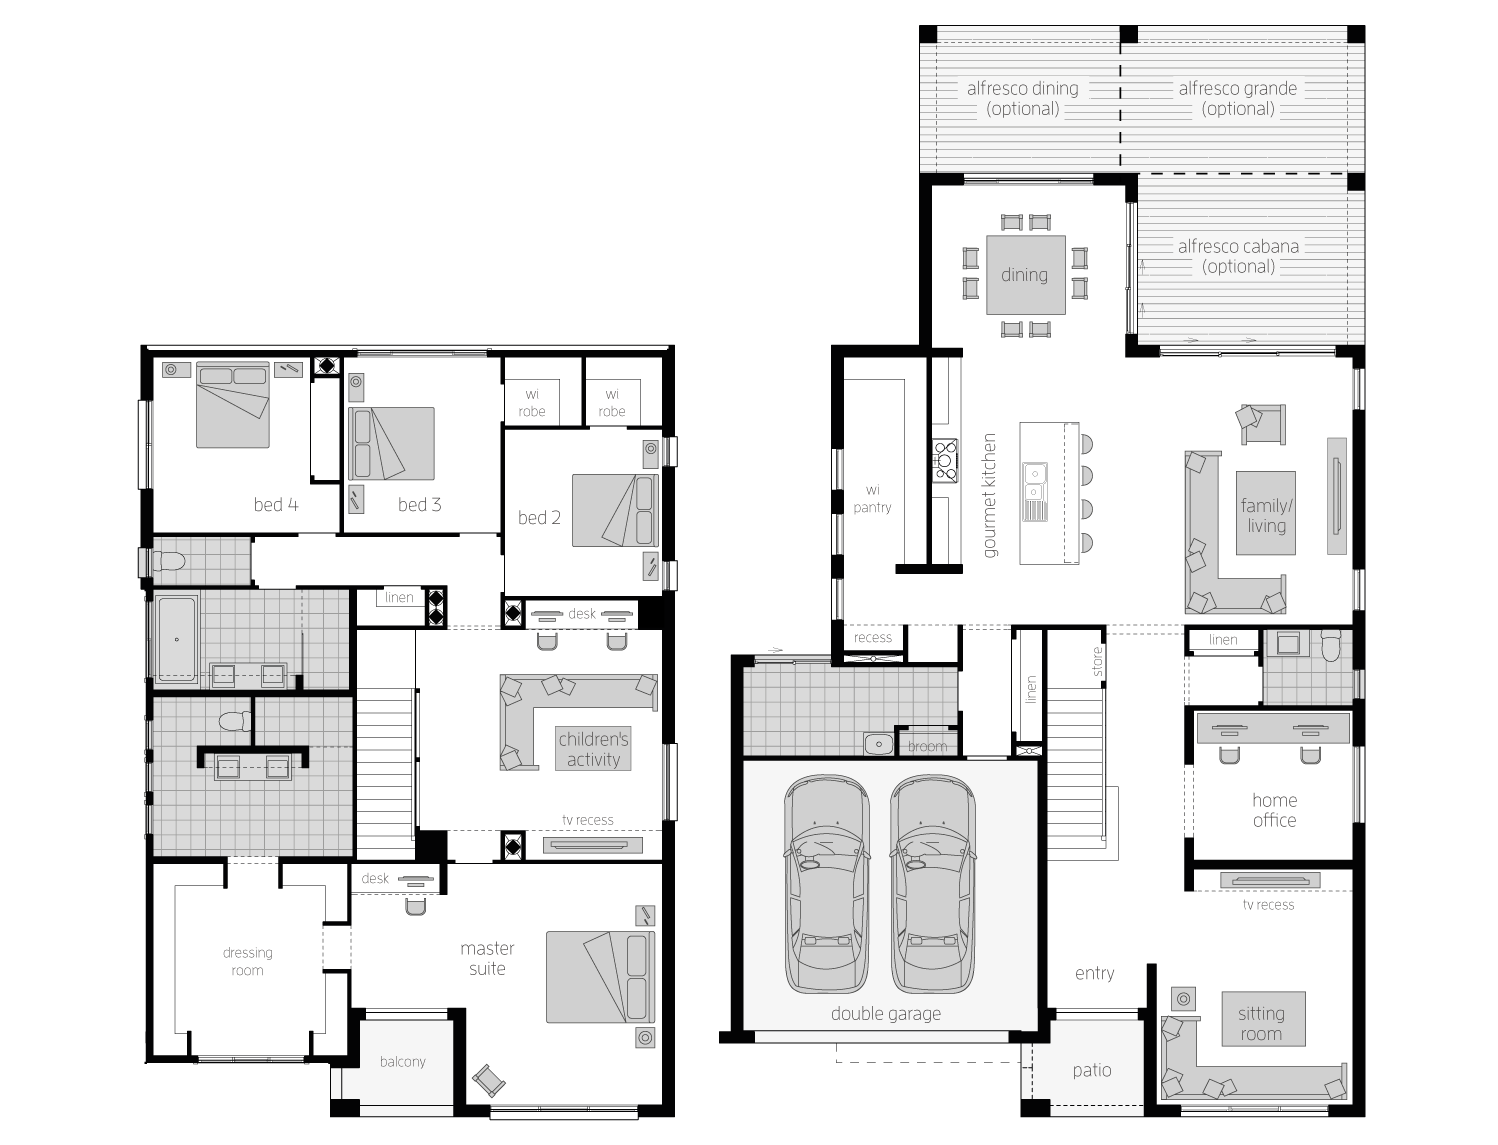 Floor Plan - Metropolitan40 - Two Storey Home - McDonald Jones